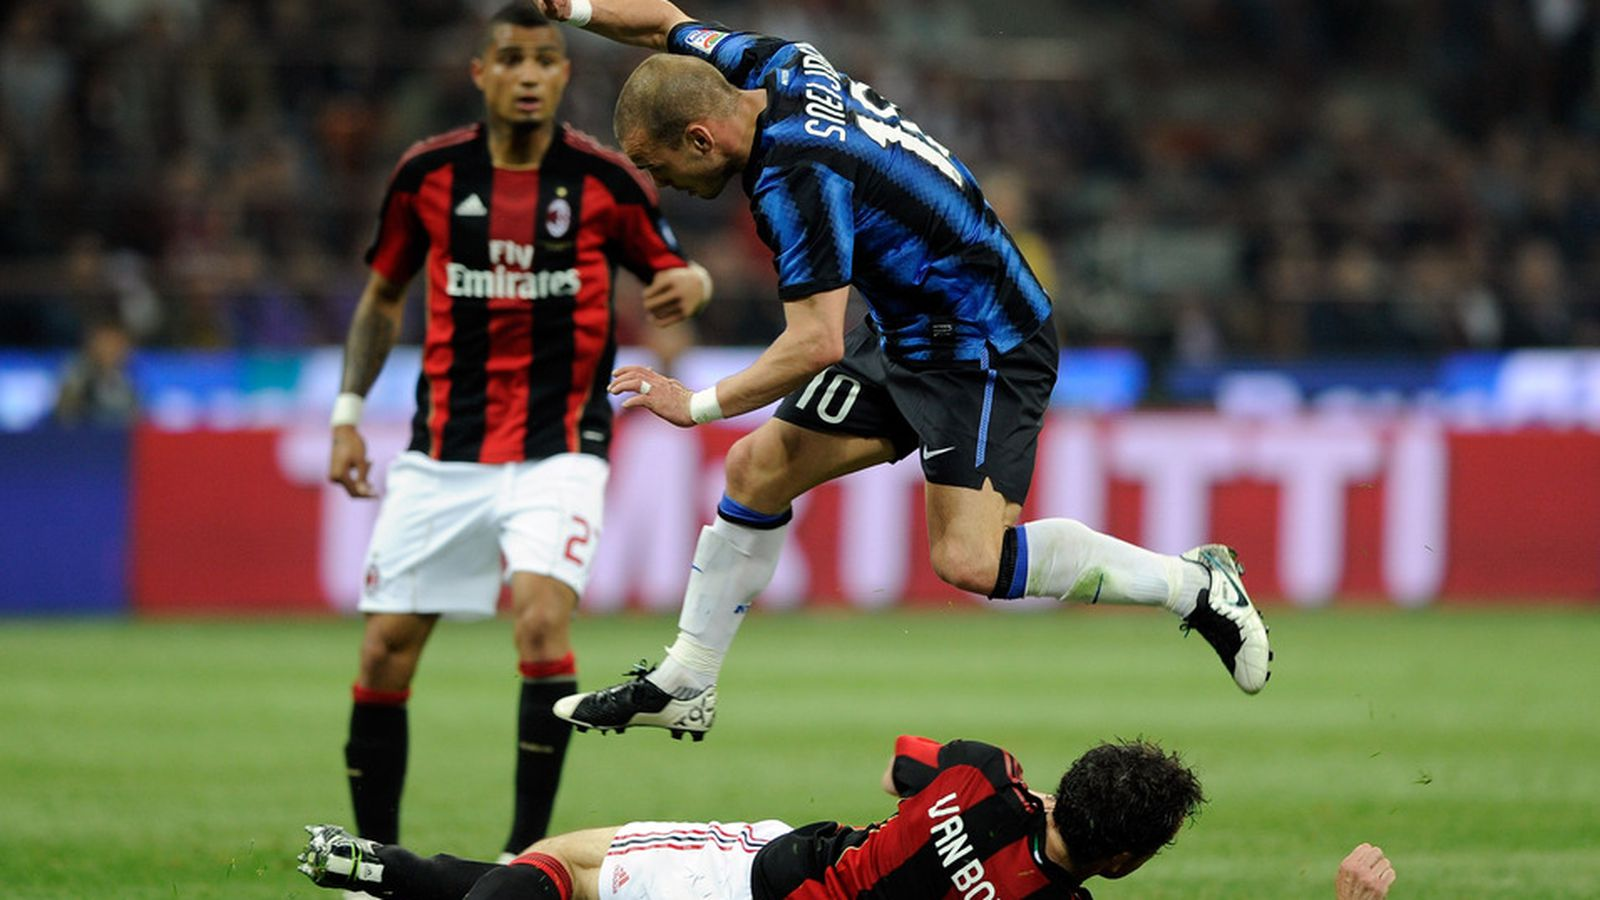 AC Milan Vs. Inter Milan: The recent rise and fall of the Milan empires